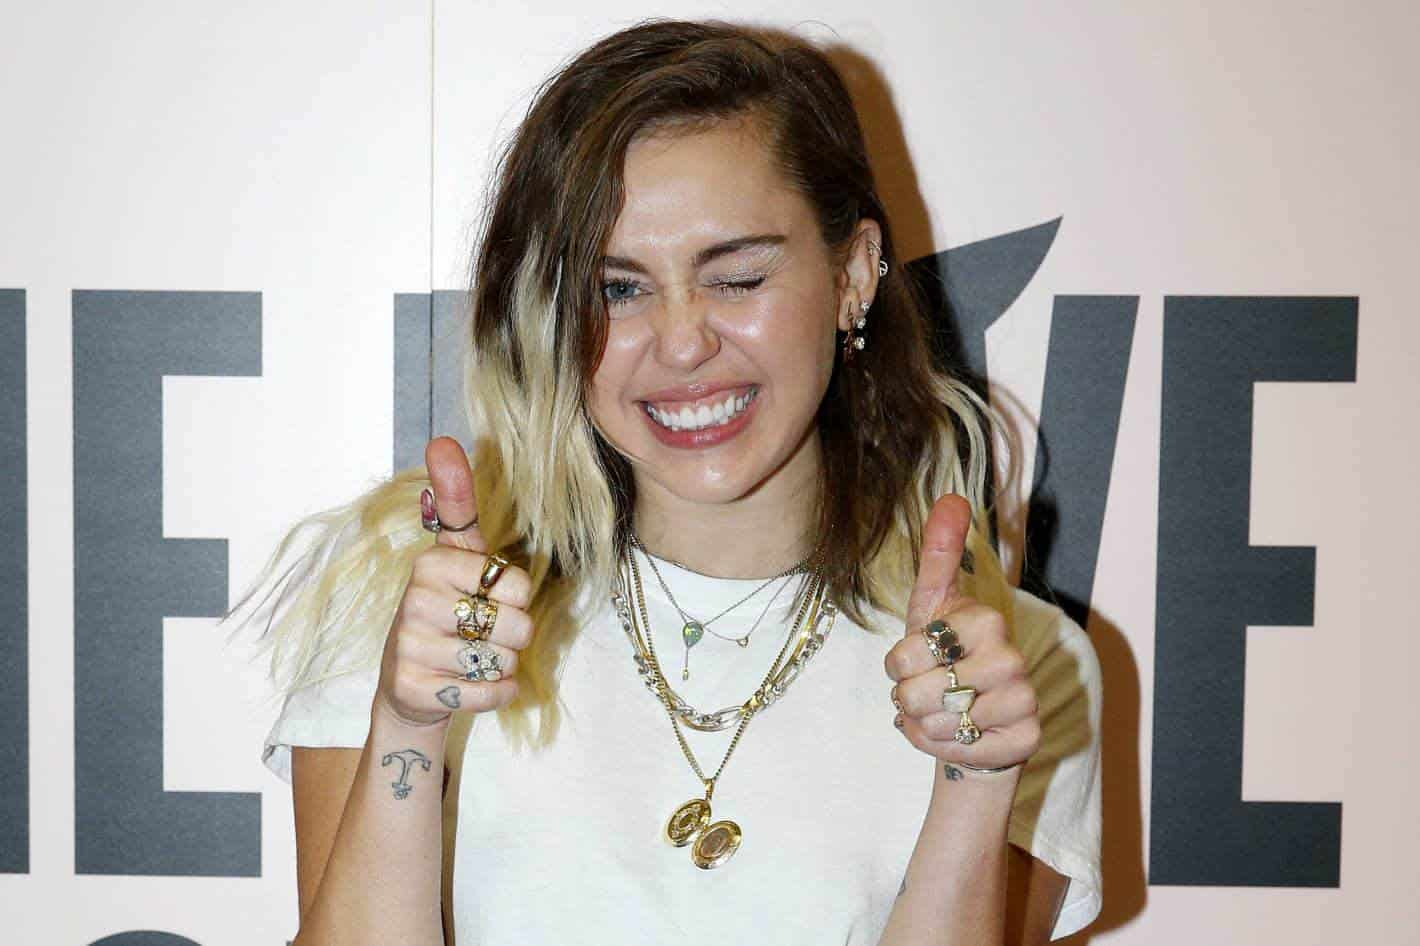 Demandan a Miley Cyrus por plagiar la canción 'We Can't Stop'